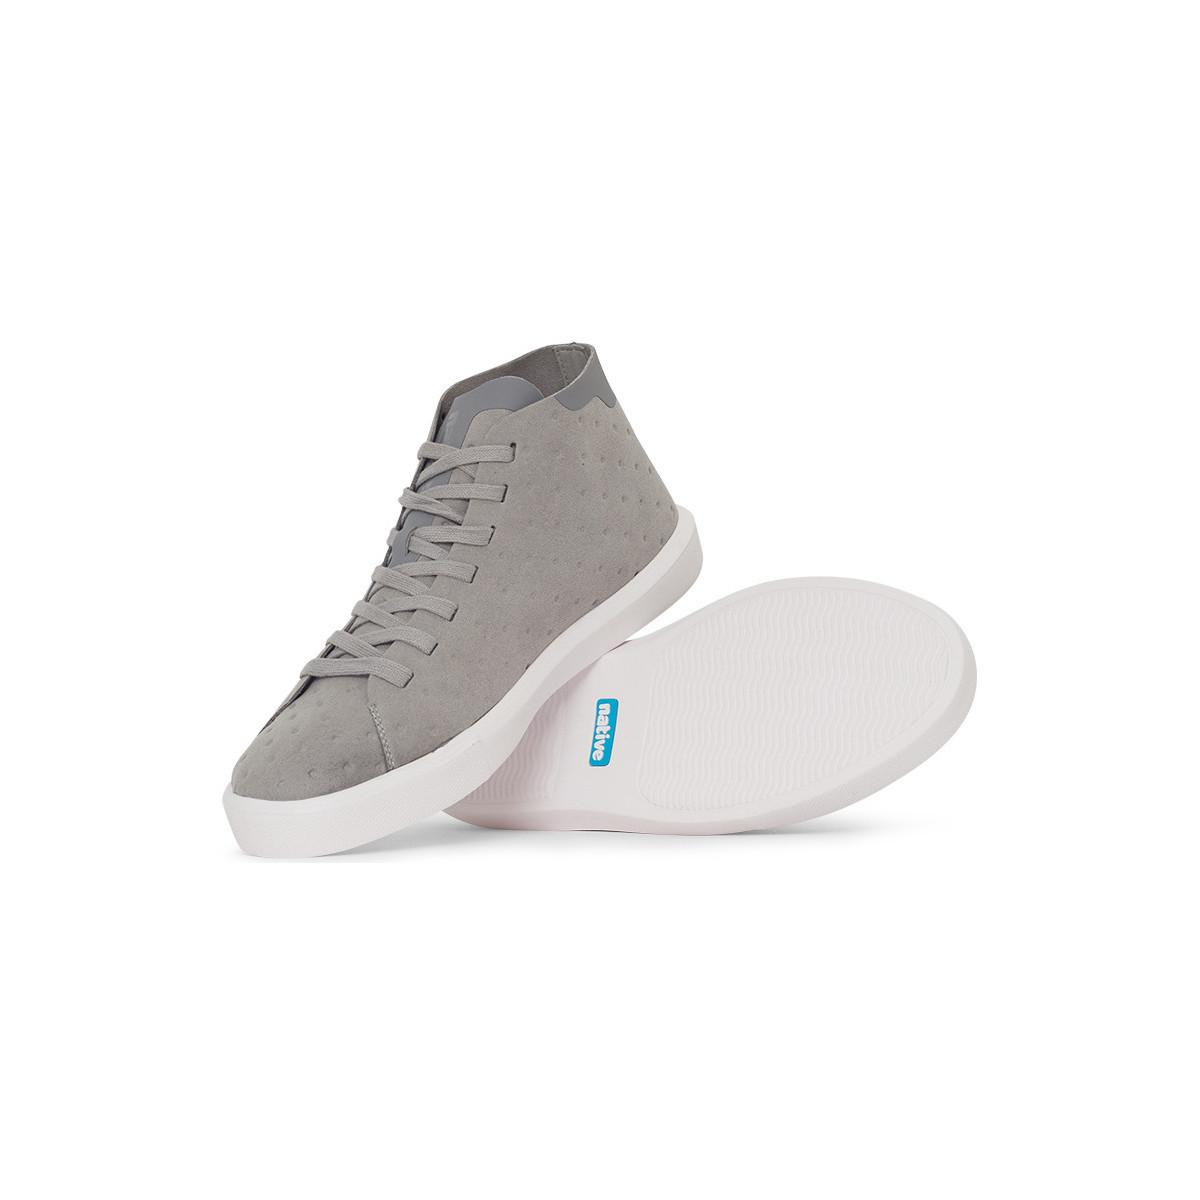 Native Shoes Monaco Mid Non Perf Trainer Grey Men's Shoes (high-top Trainers) In Grey in Grey for Men